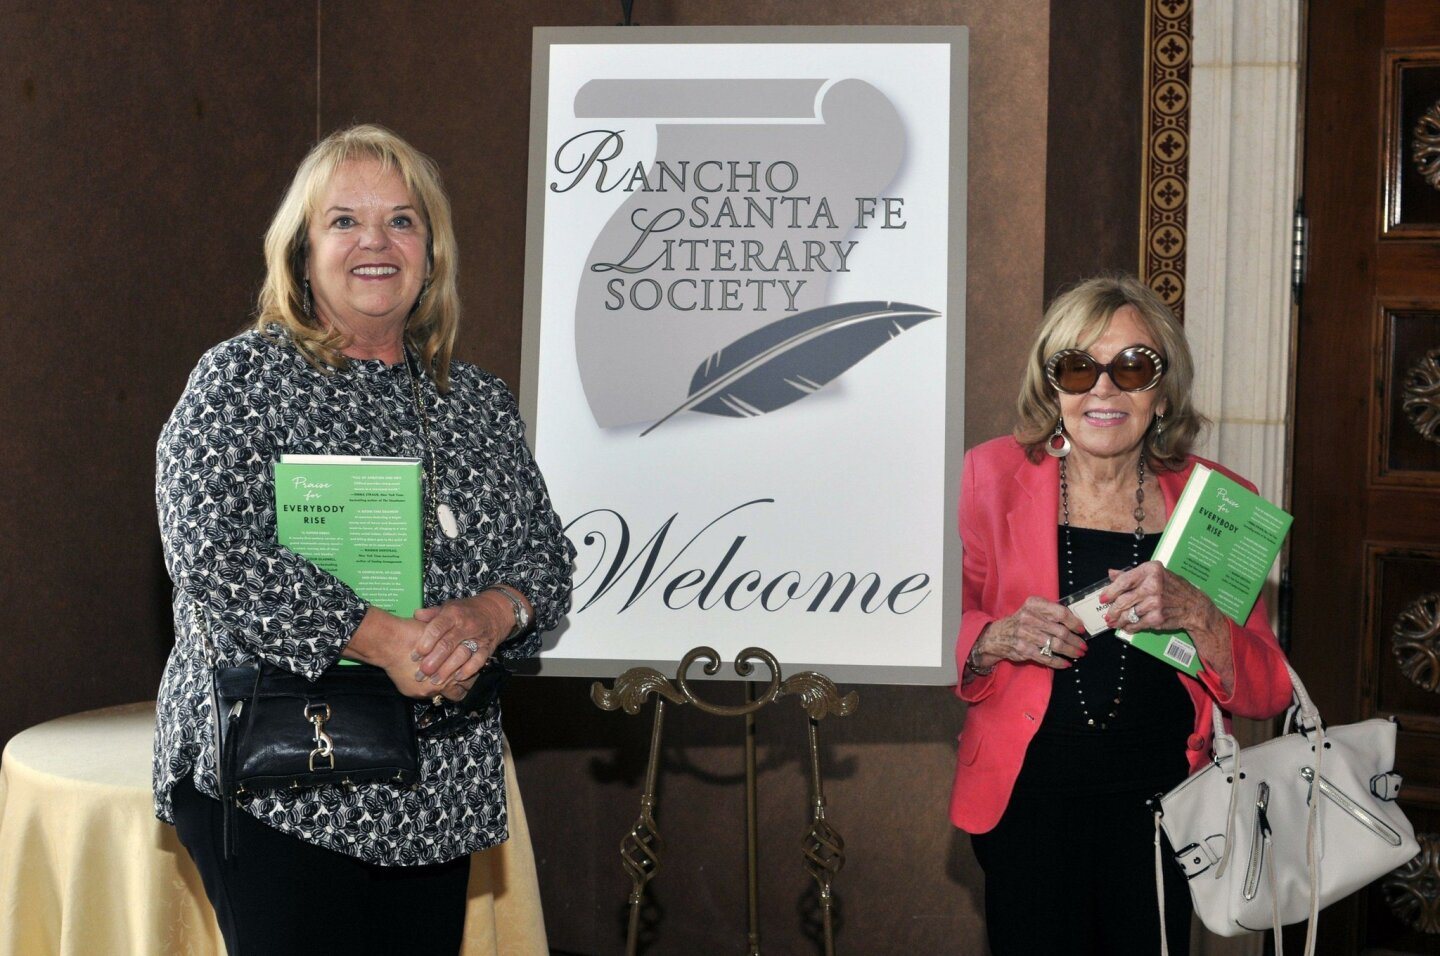 RSF Literary Society luncheon